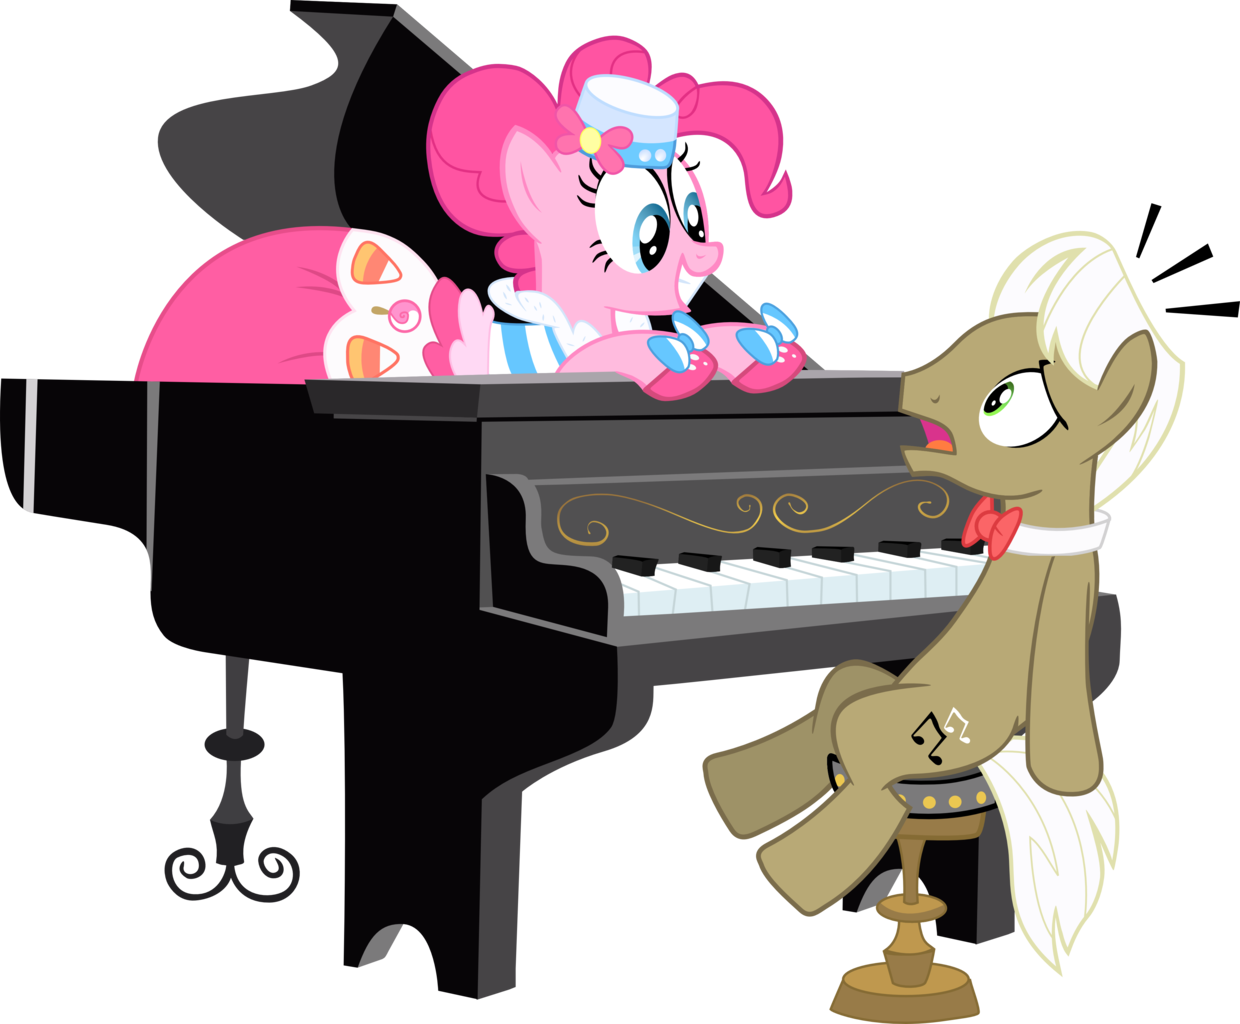 artist sansbox clothes. Piano clipart comic